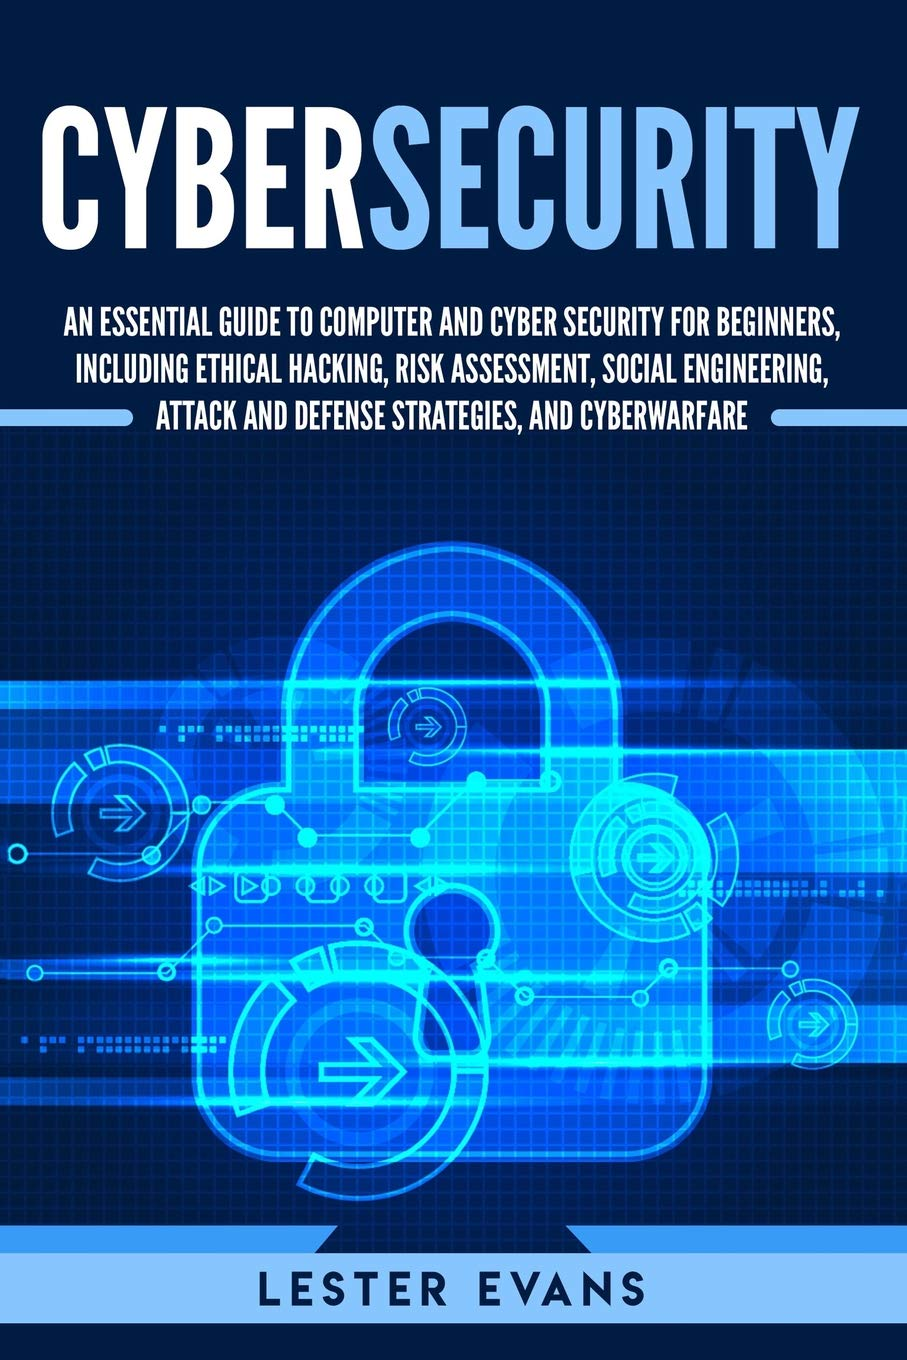 Cybersecurity: An Essential Guide to Computer and Cyber Security for Beginners, Including Ethical Hacking, Risk Assessment...